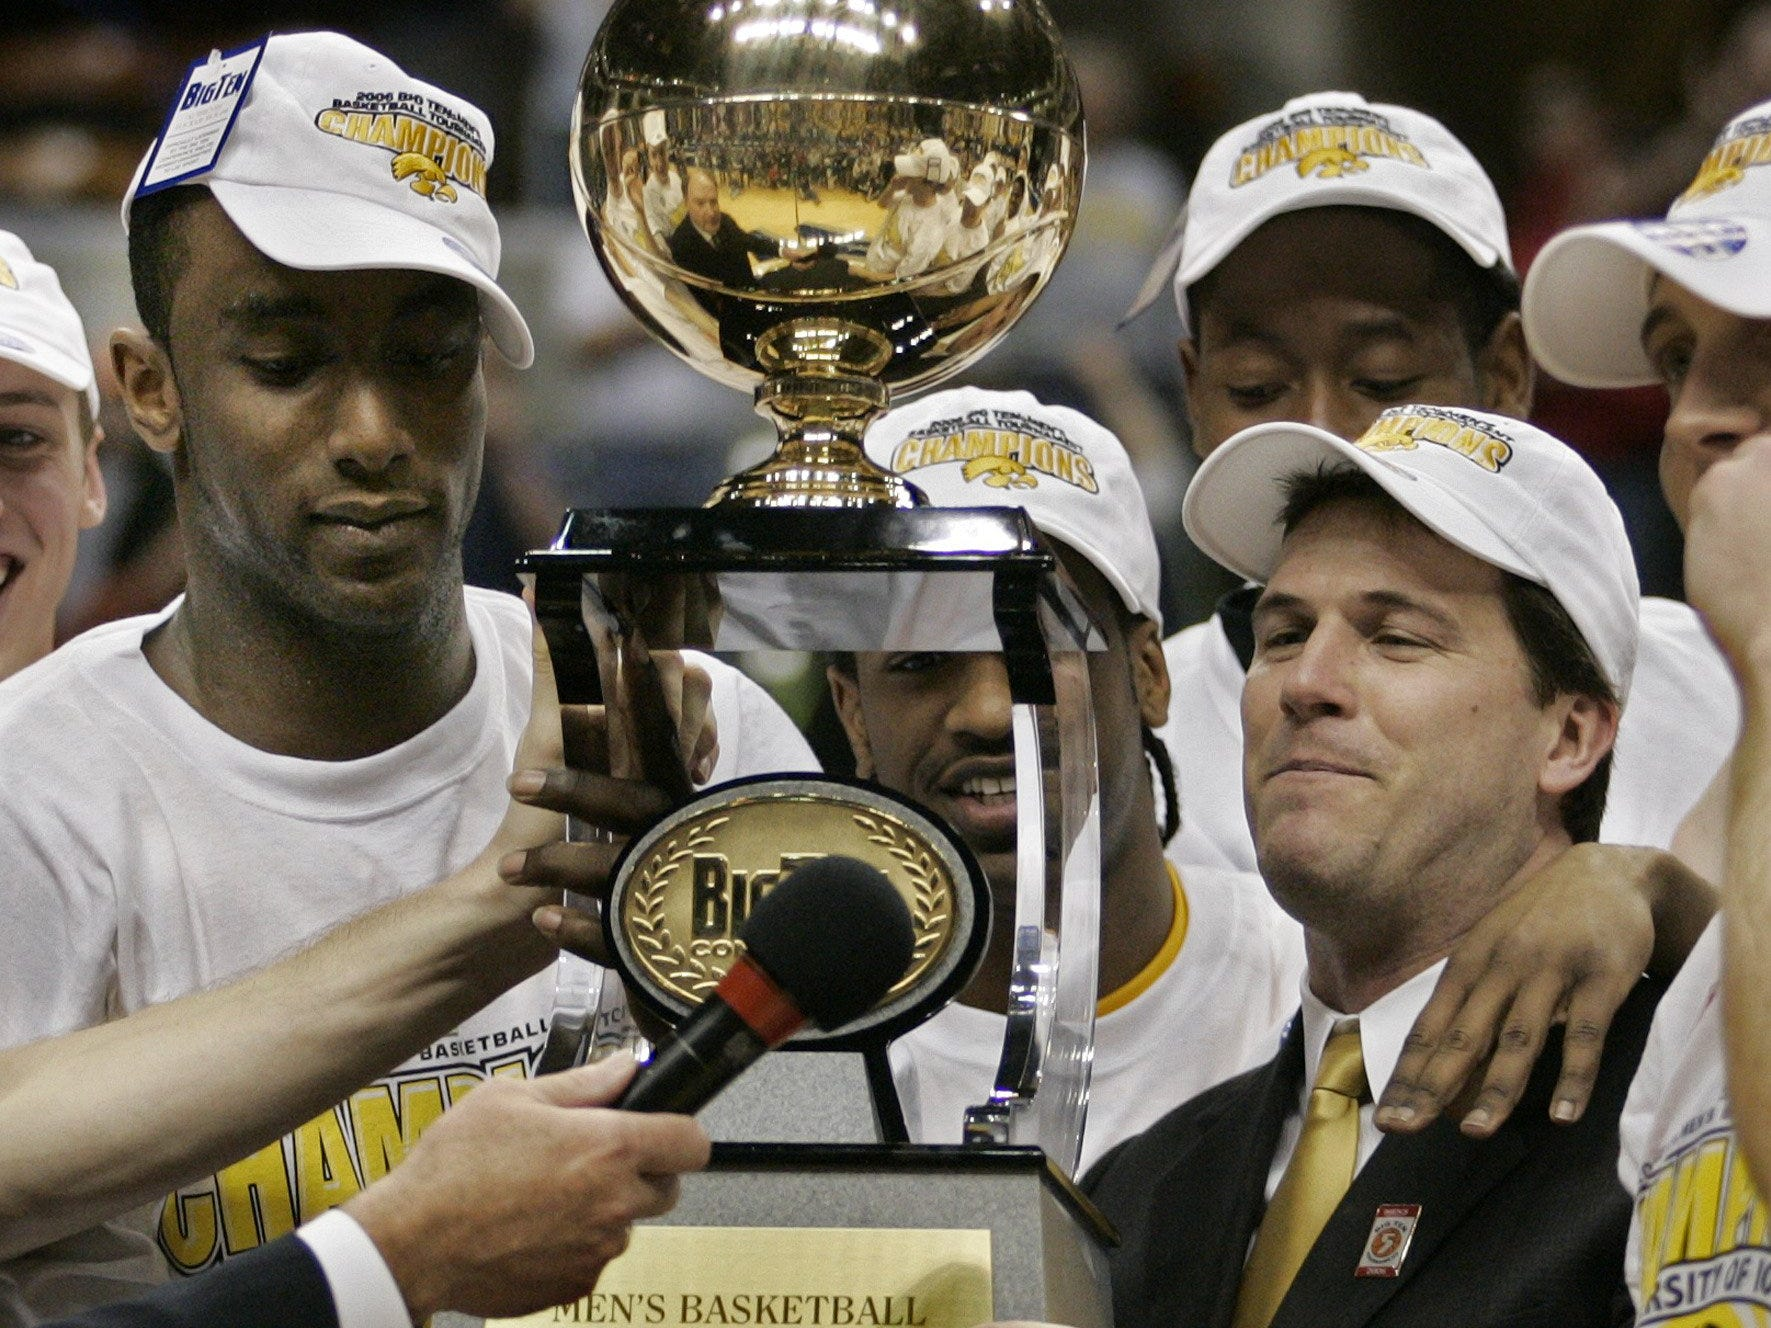 From 2006: Iowa forward Doug Thomas and coach Steve Alford keep a close watch on the Big Ten Conference tournament trophy after the second-seeded Hawkeyes topped No. 1 seed Ohio State 67-60 in Indianapolis, Ind.